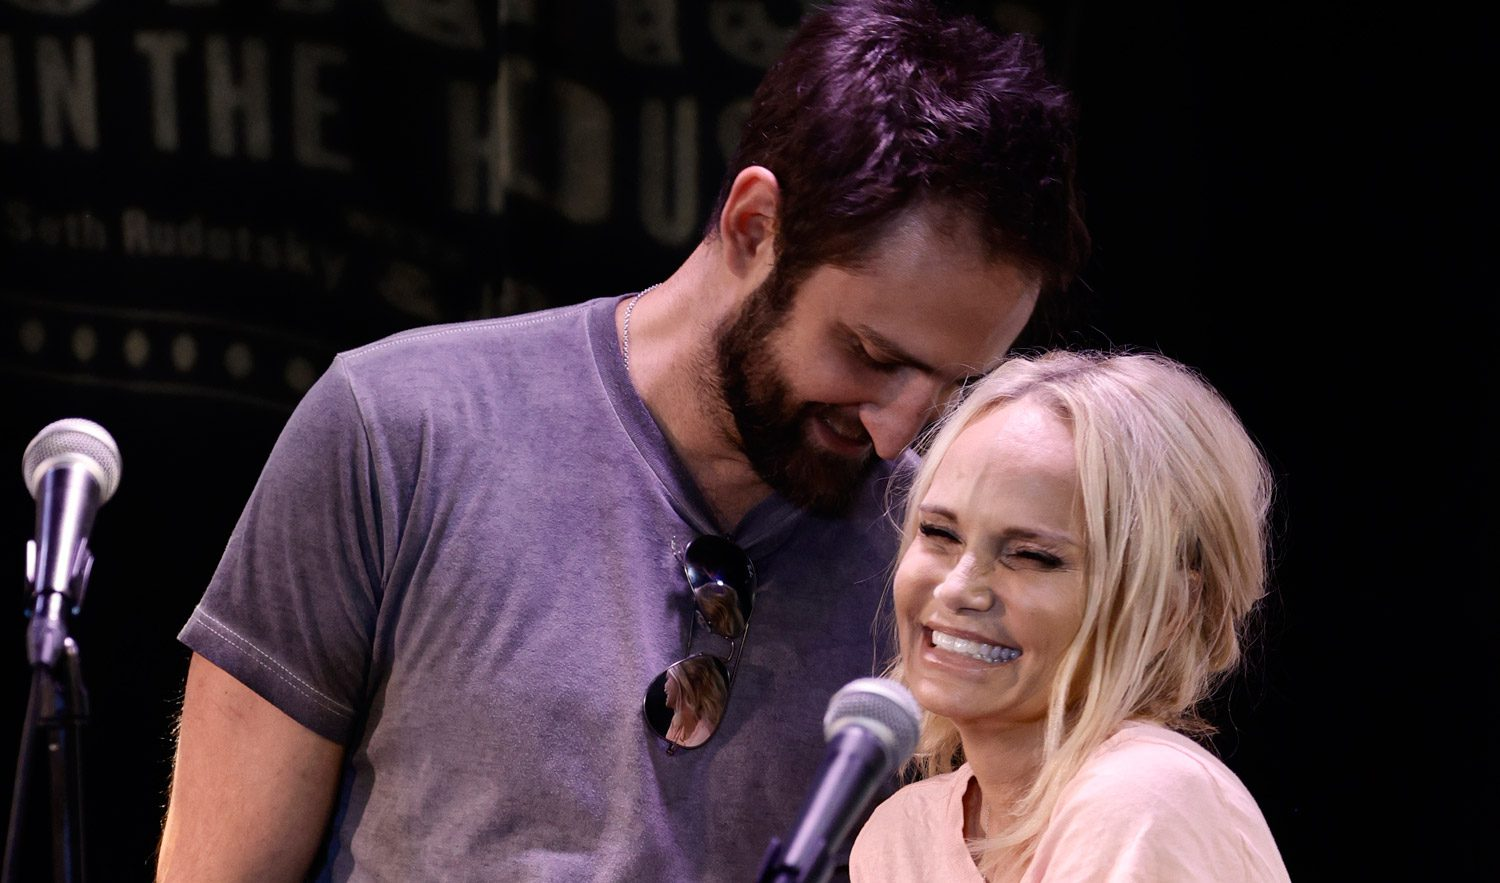 Kristin And Josh Attend Charity Event